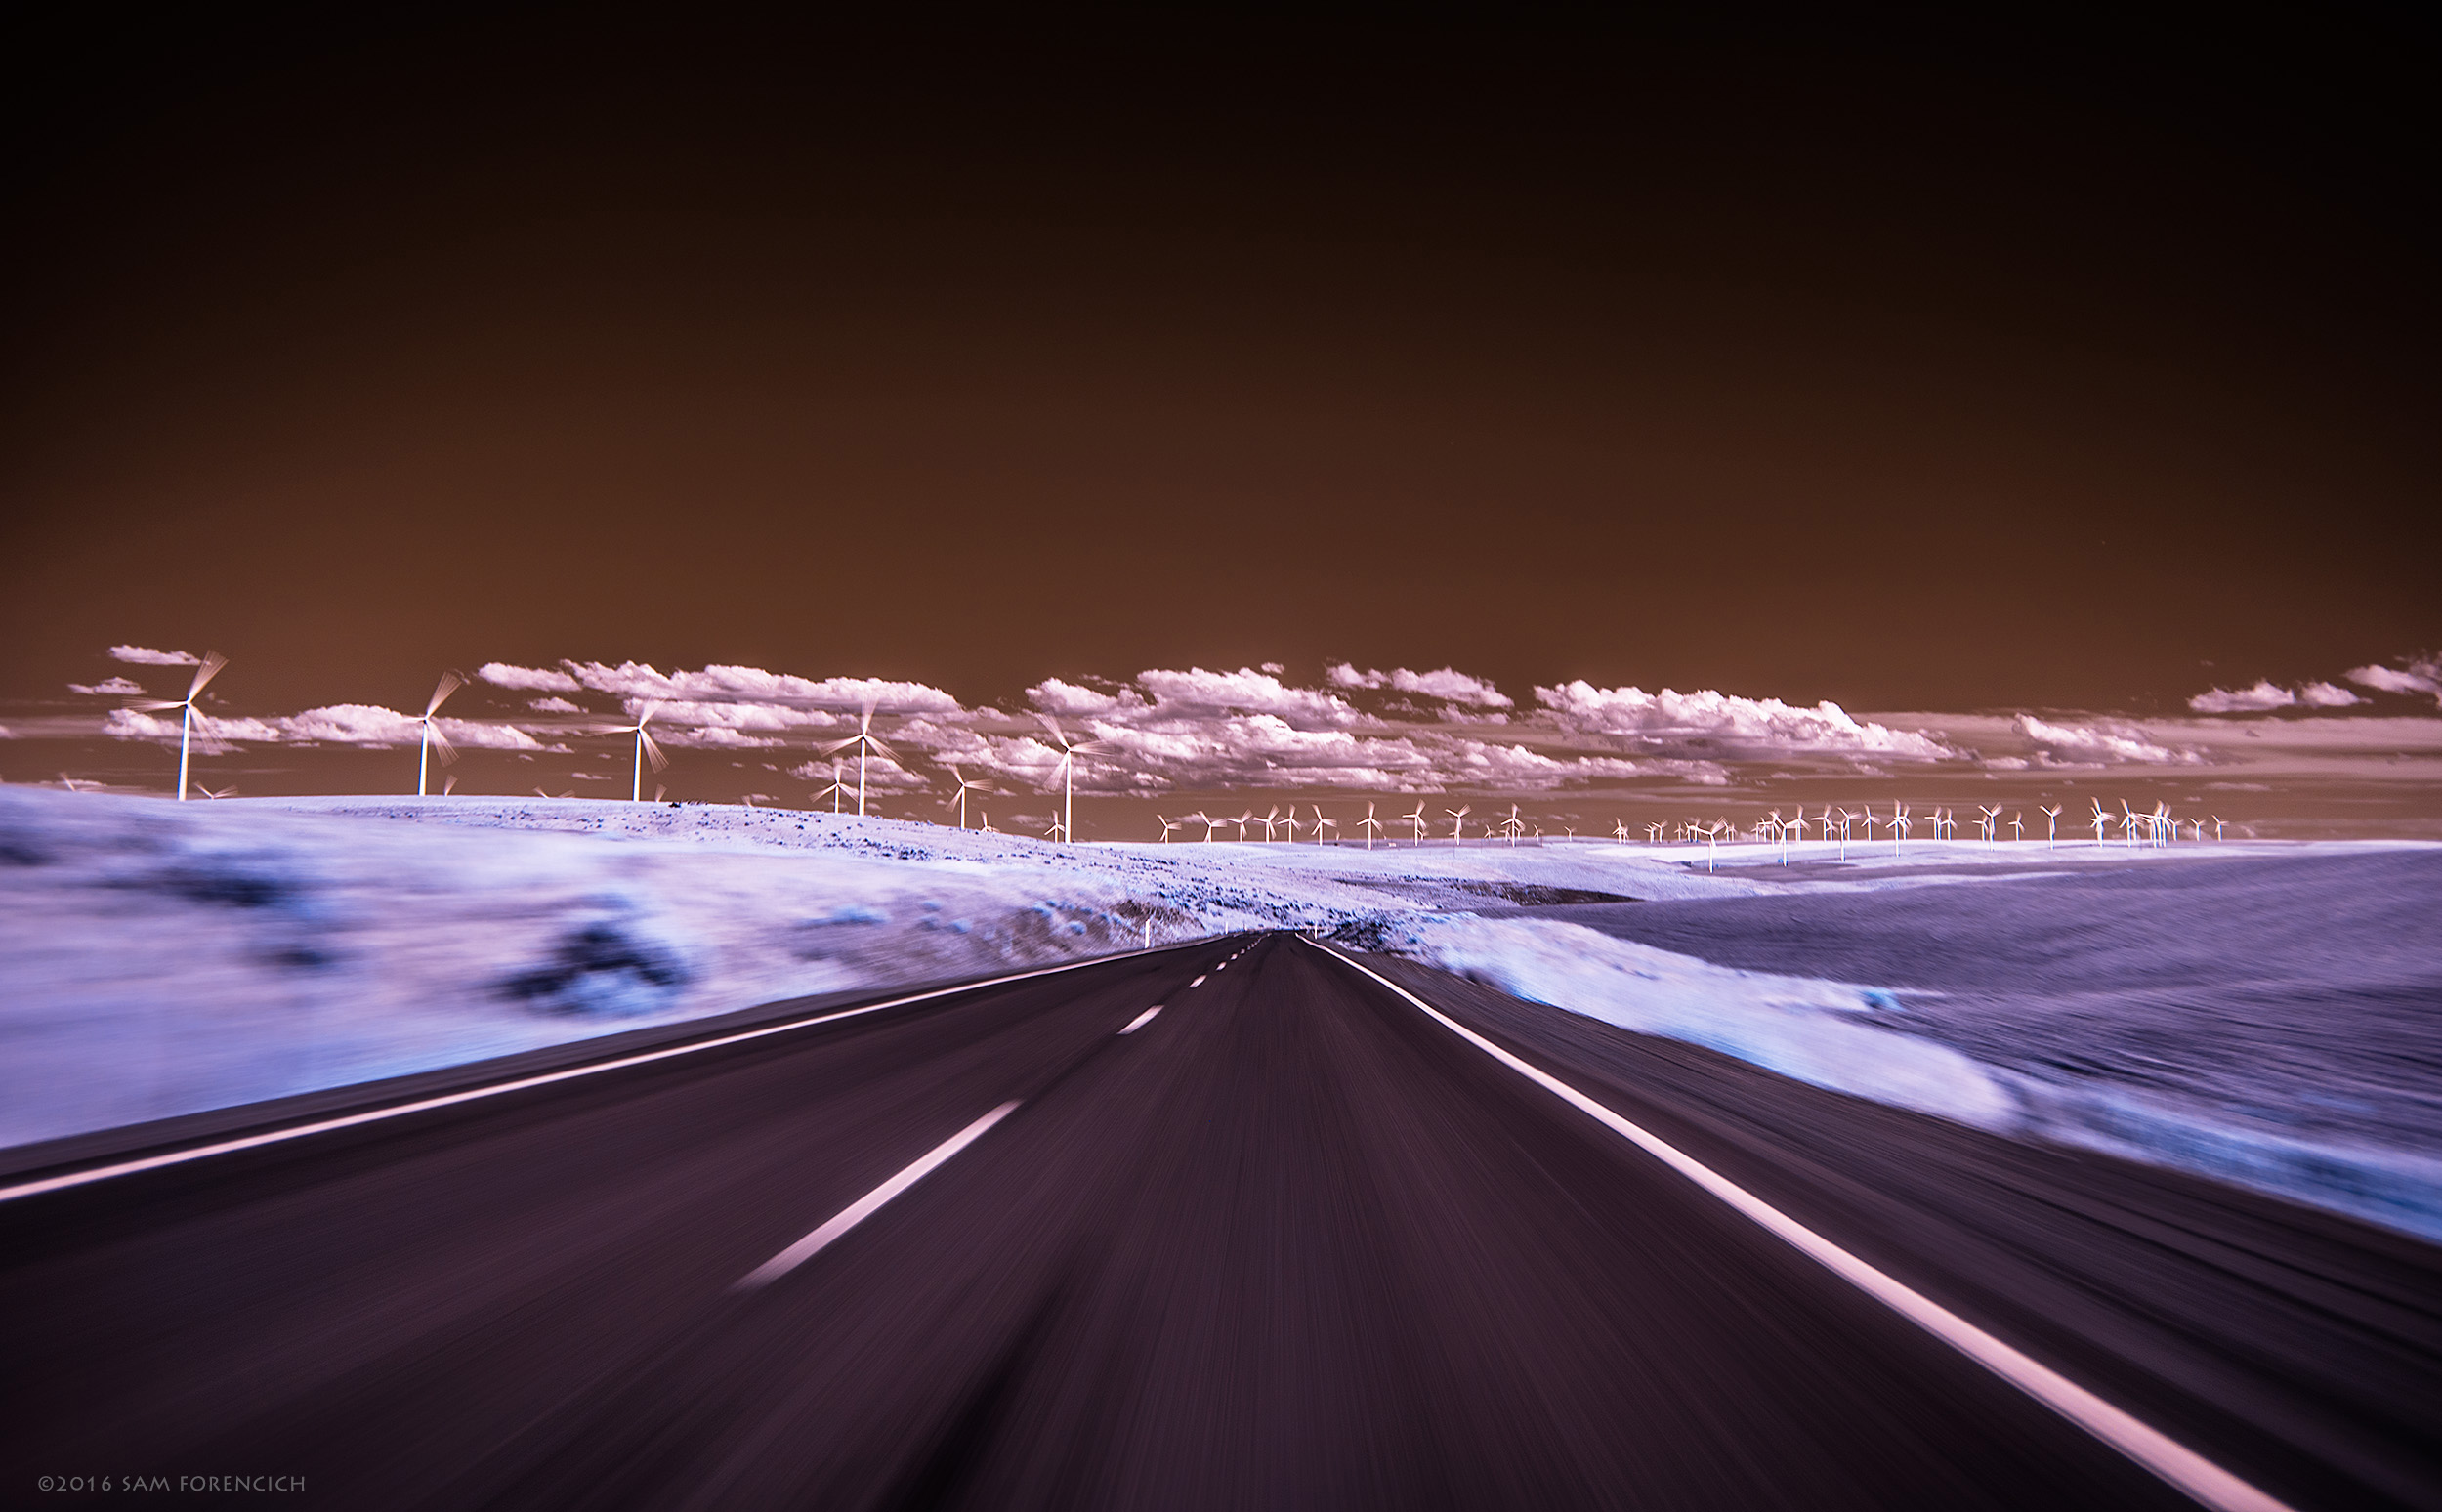 A country road winds through the windmill farms of the Columbia Plateau region of Central Oregon. Still image from Invisible Oregon time-lapse sequence. IR converted Nikon D750. © 2016 Sam Forencich